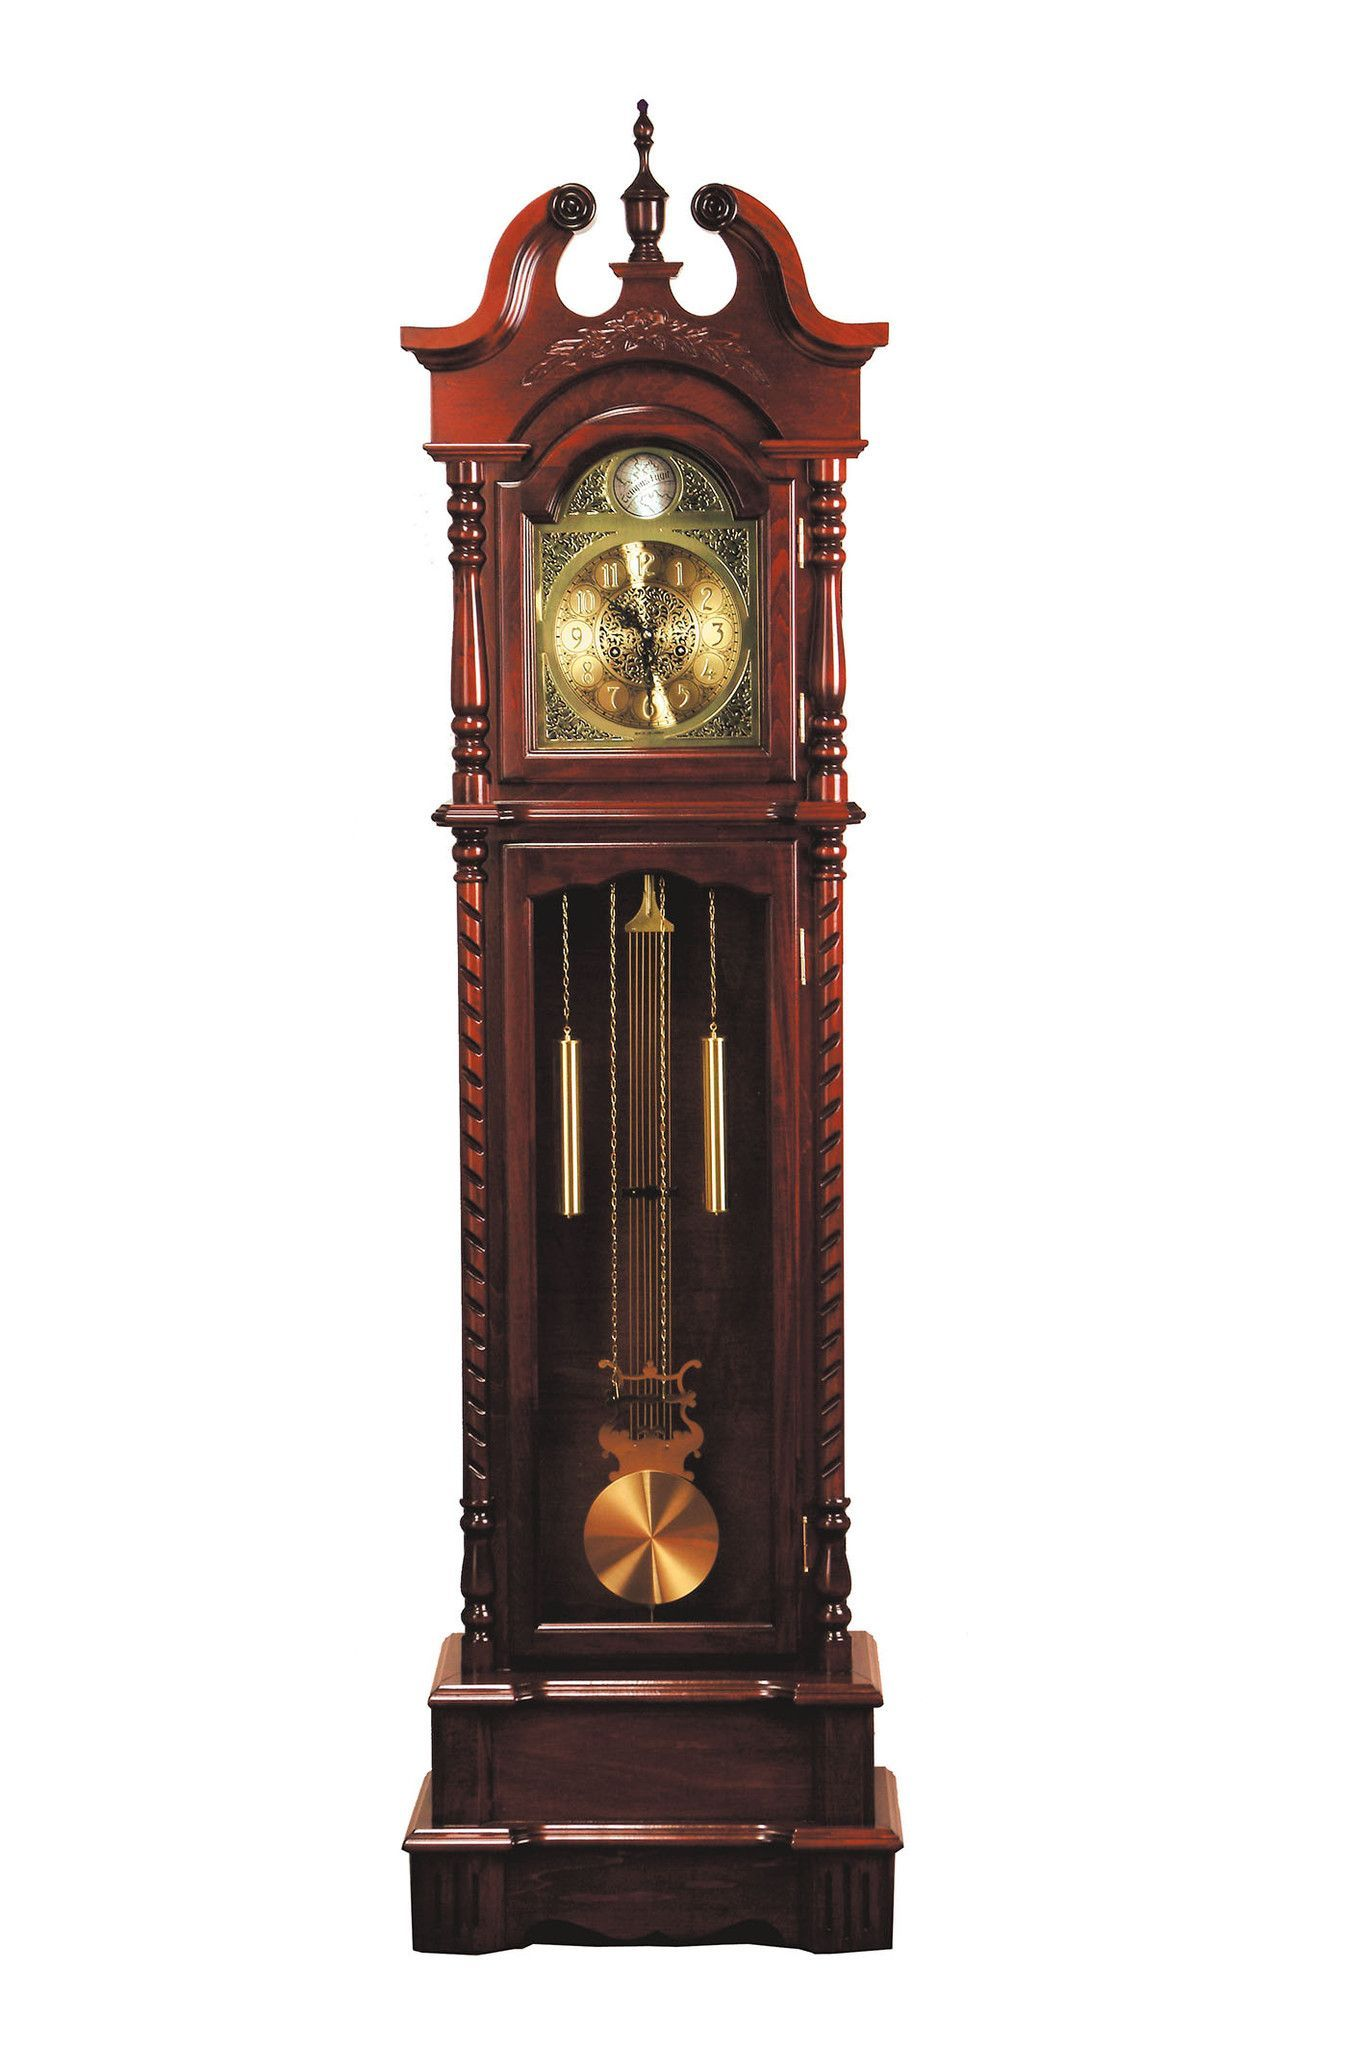 Cool Cuckoo Clocks Dark Walnut Grandfather Clock 01431 Grandfather Clock